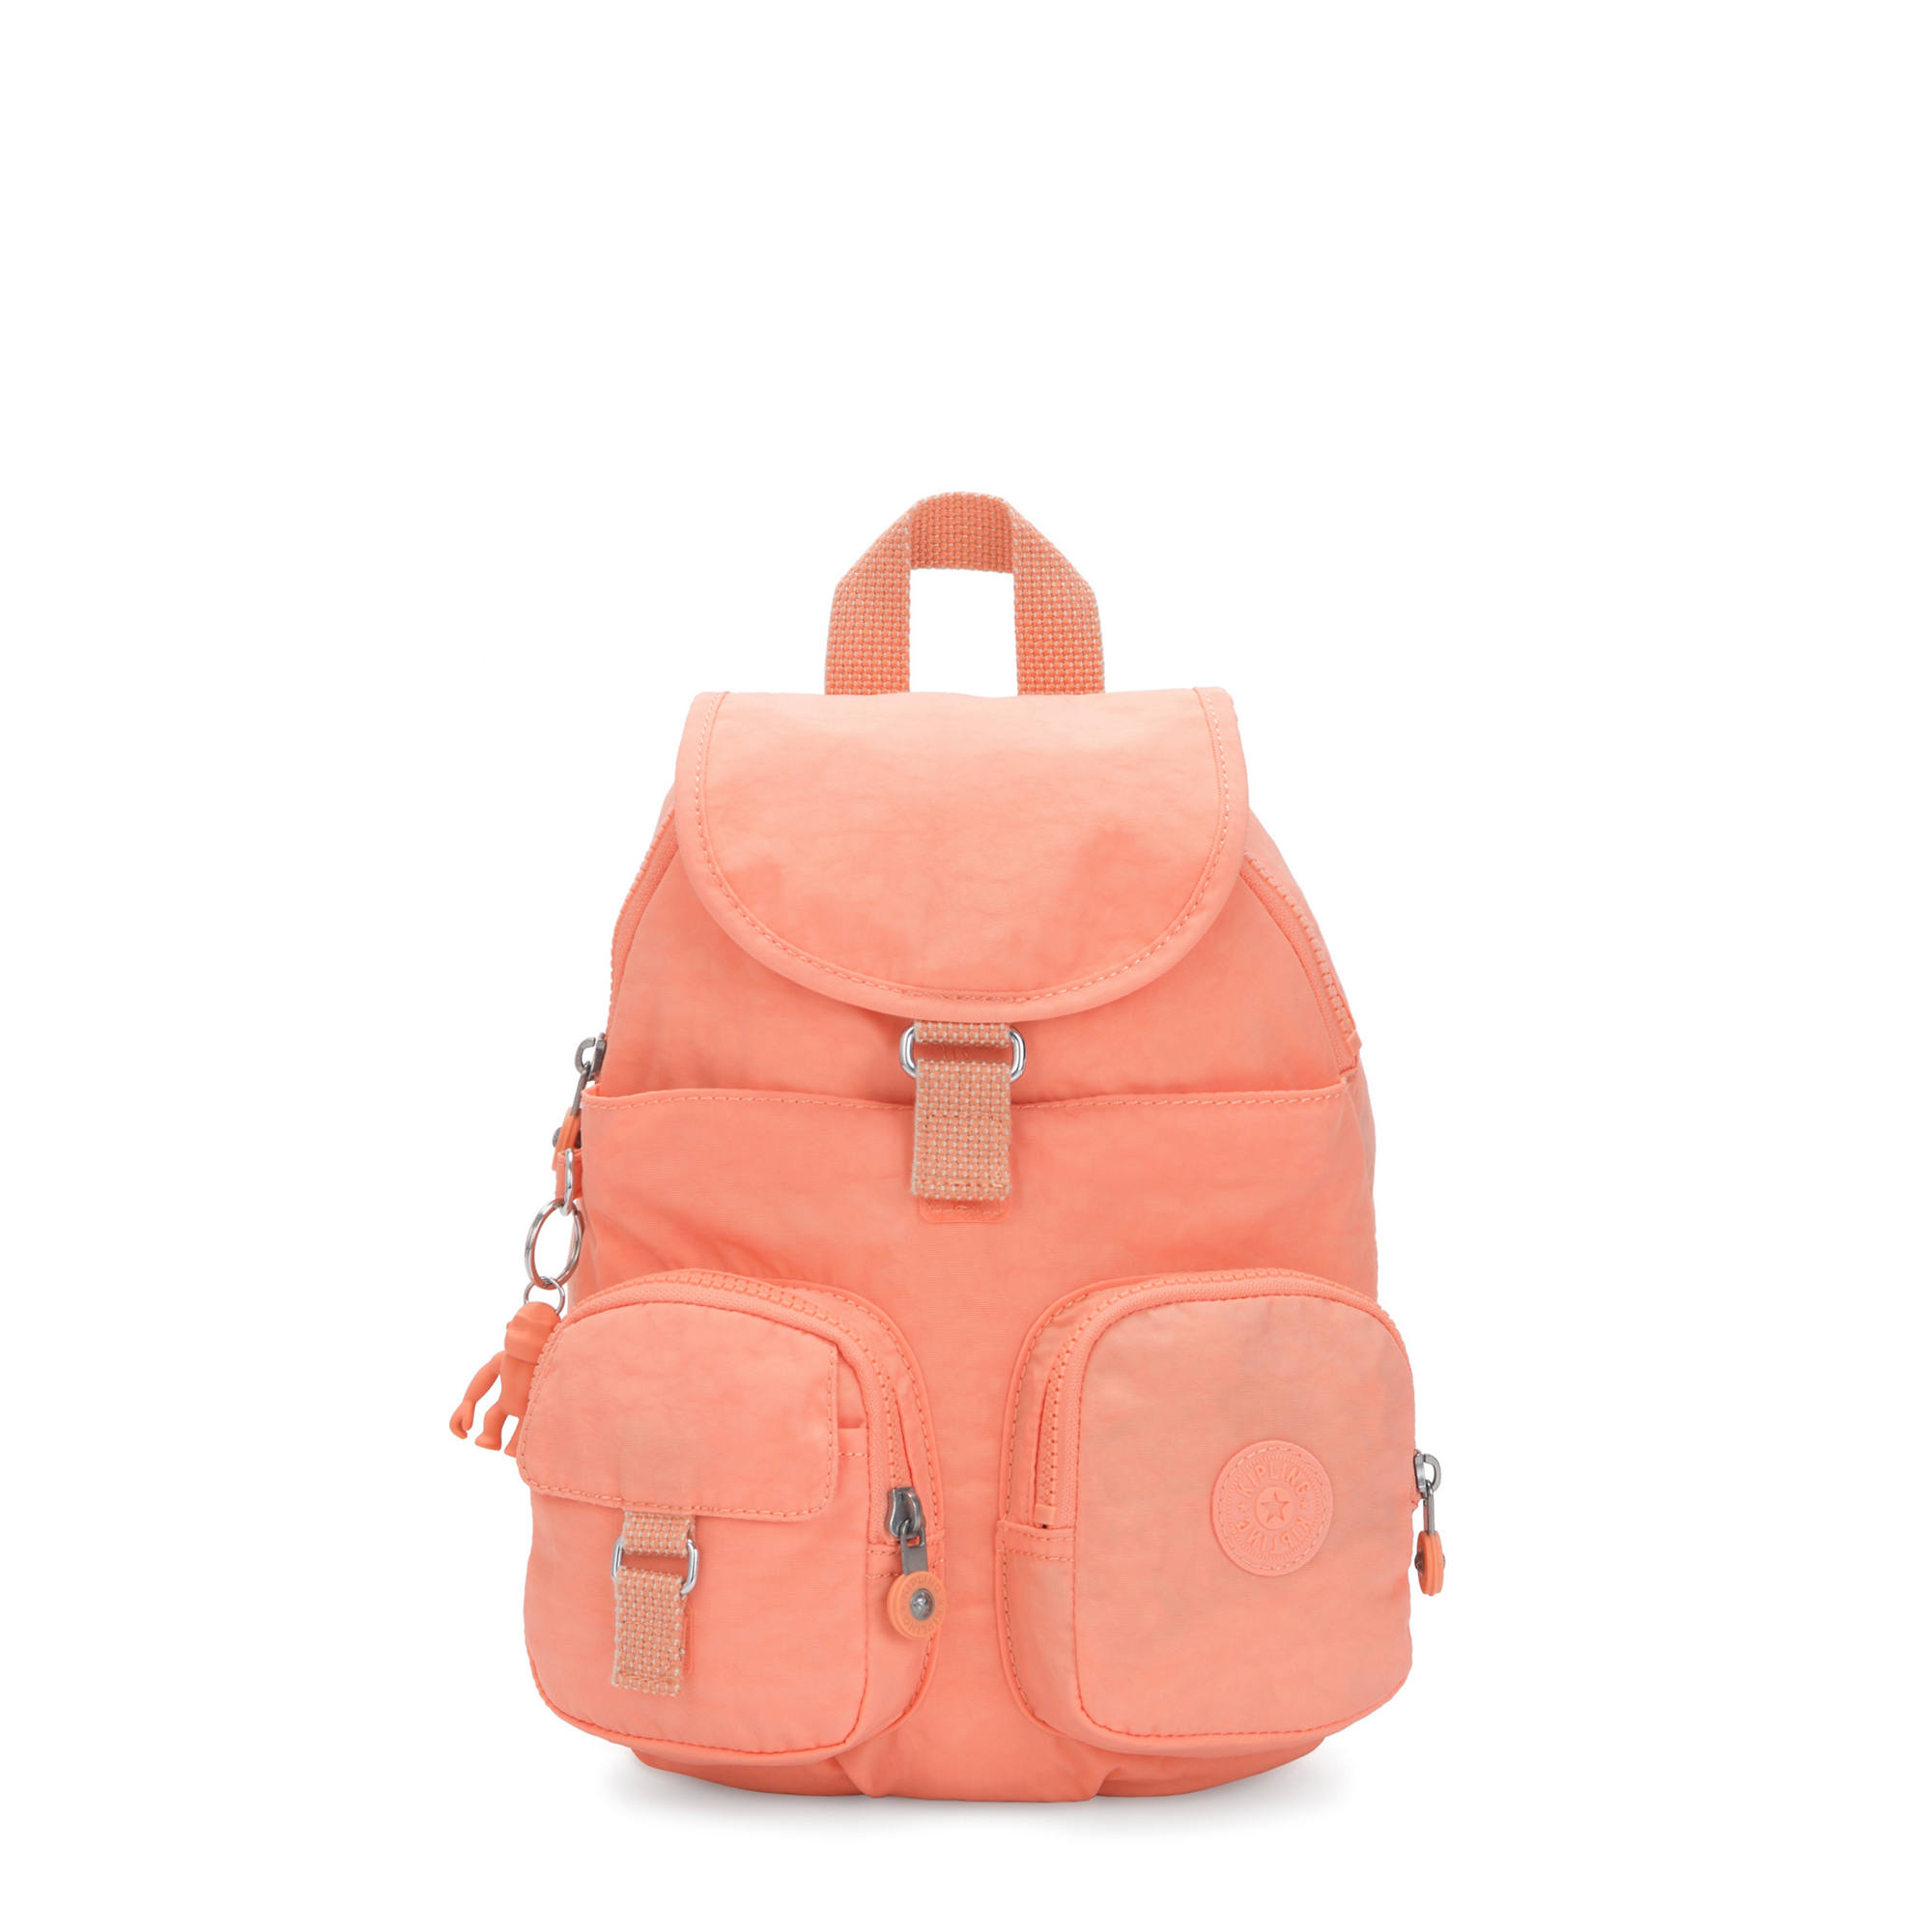 Lovebug Small Backpack,Peachy Coral,large-zoomed